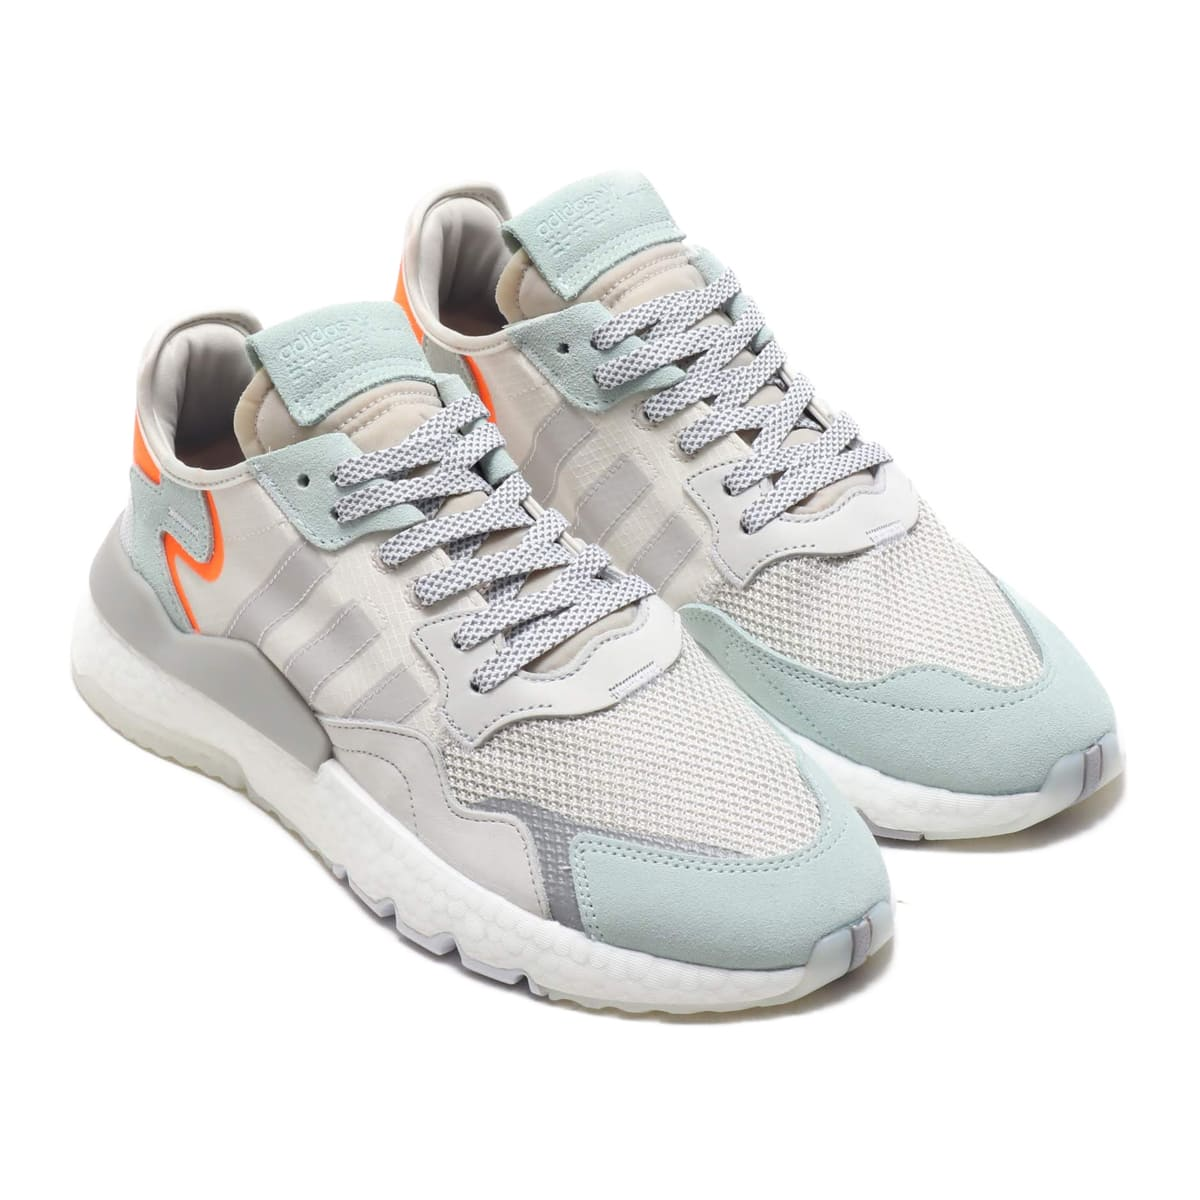 adidas Originals NITE JOGGER RAW WHITE/GREY ONE F17/VAPOUR GREEN 19SS-I_photo_large